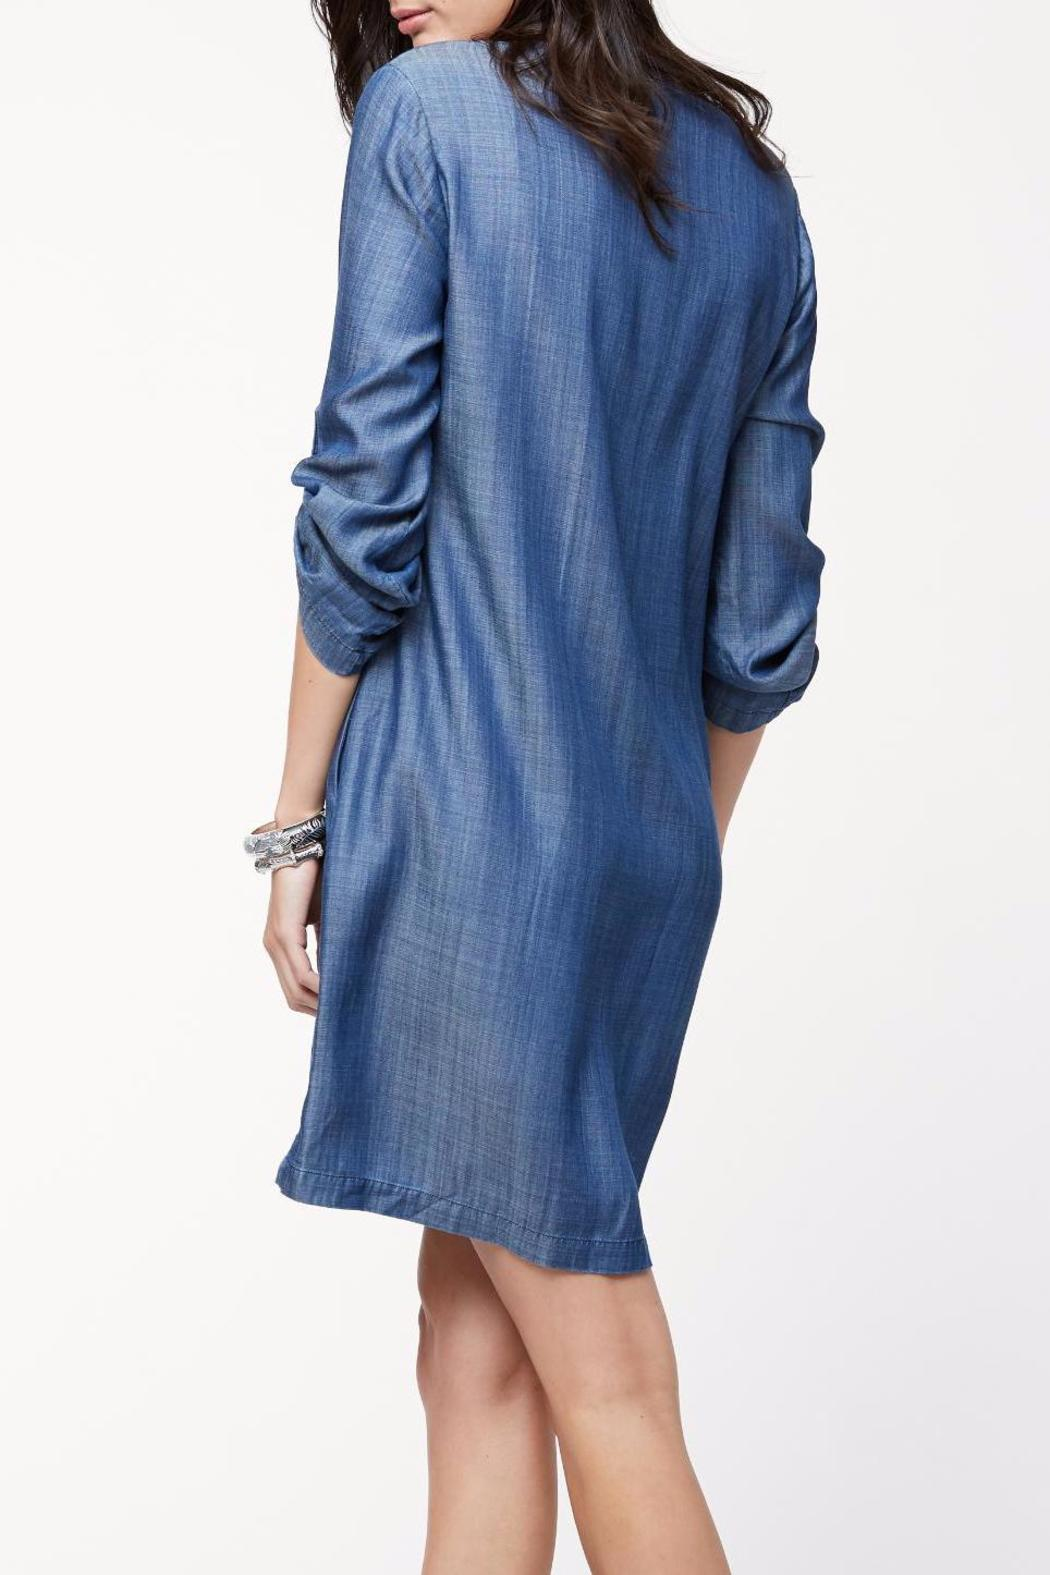 734261a43df Tommy Bahama Chambray All Day Shirt Dress from New Jersey by Le ...